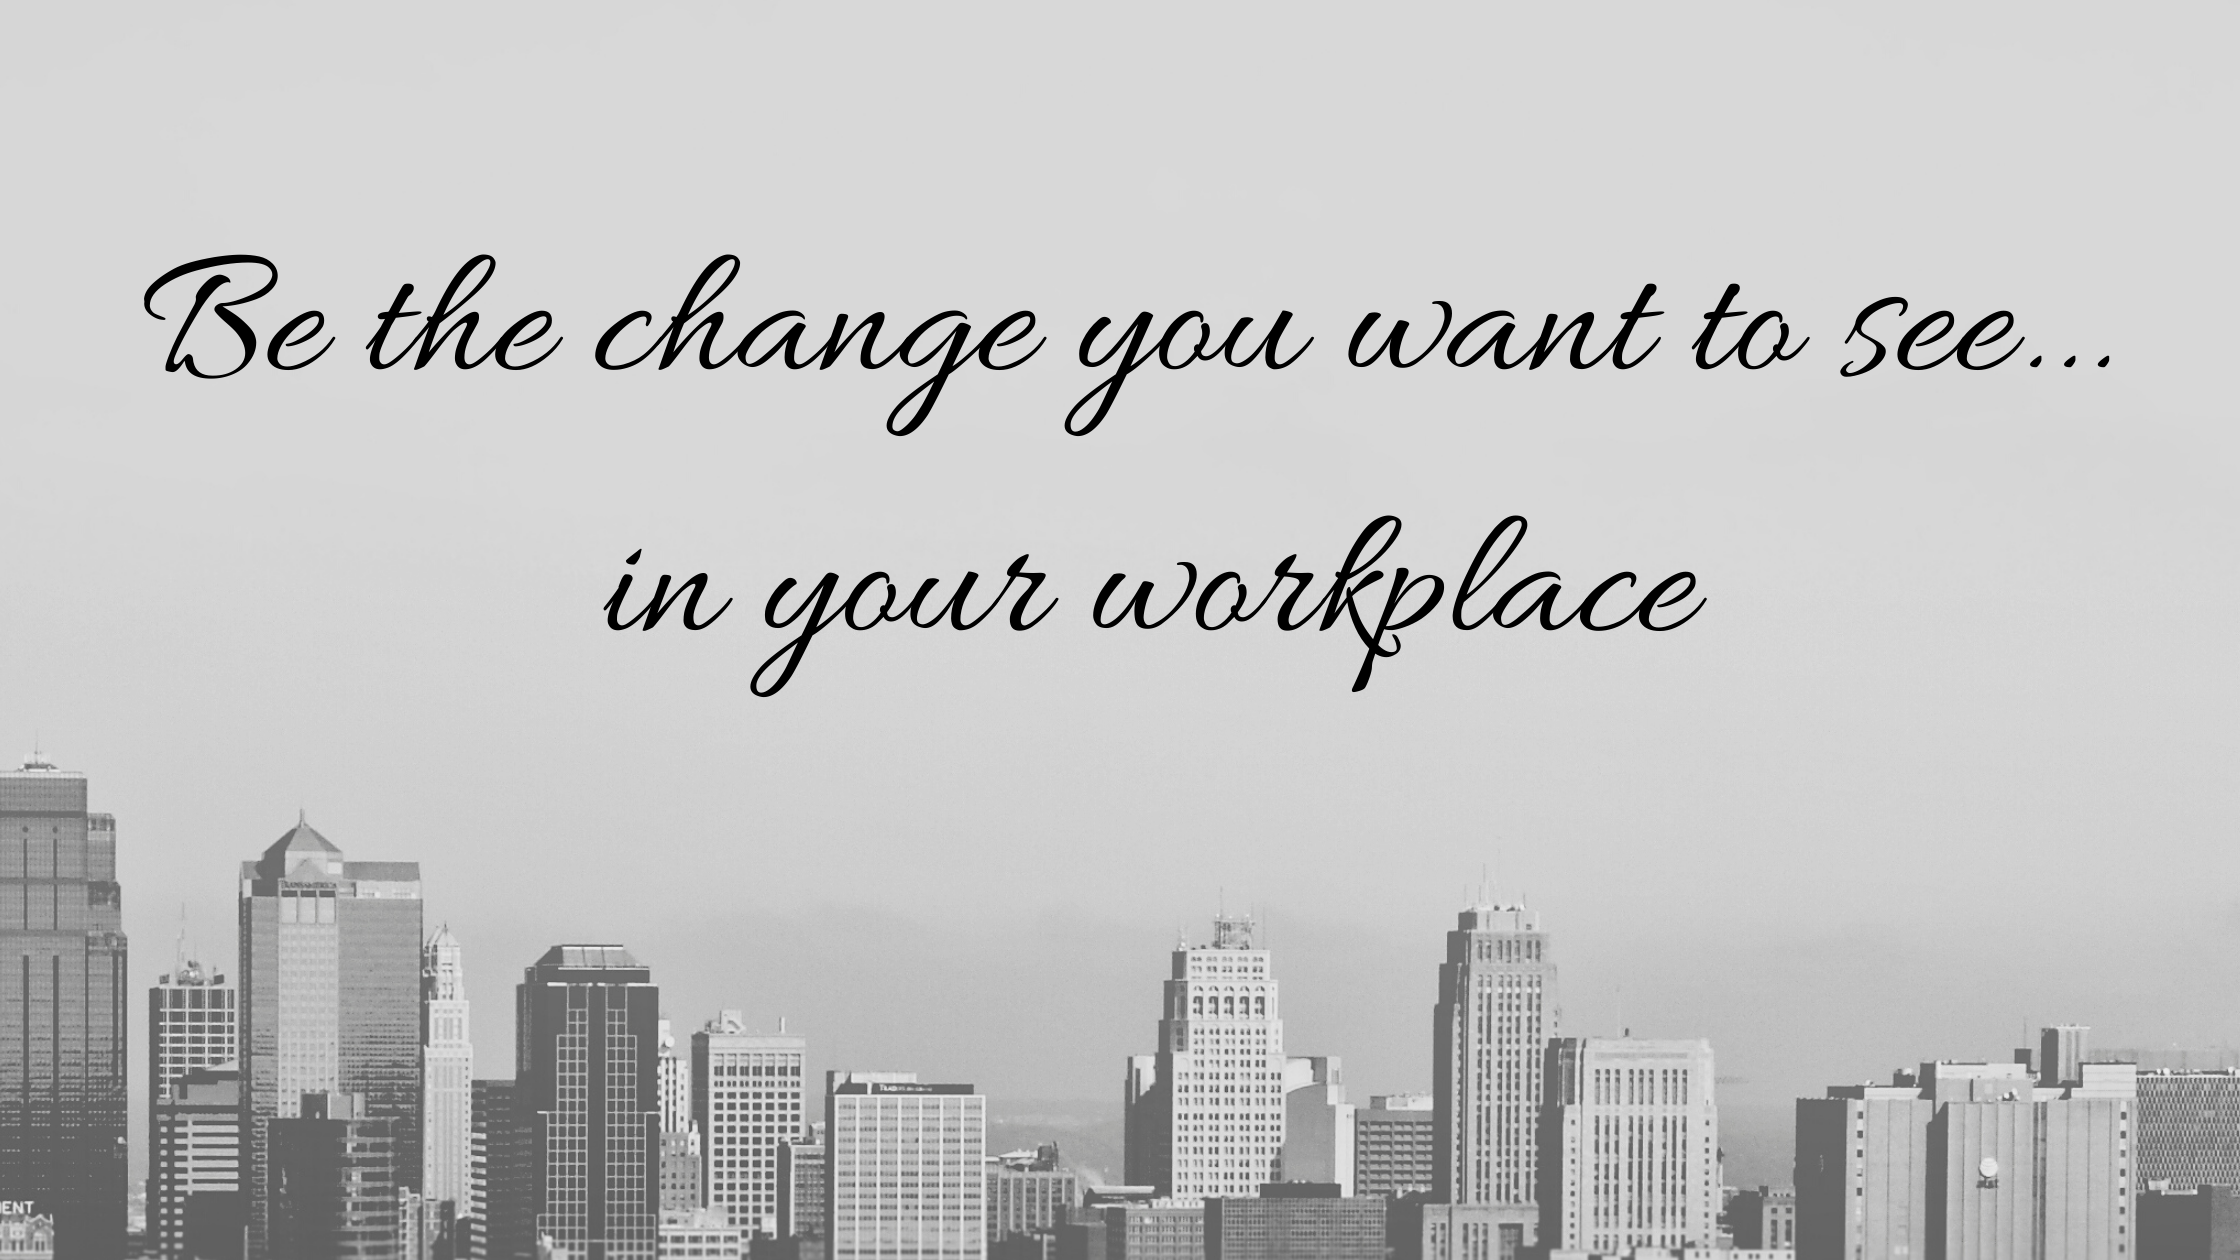 How To Make Your Workplace A Better Place